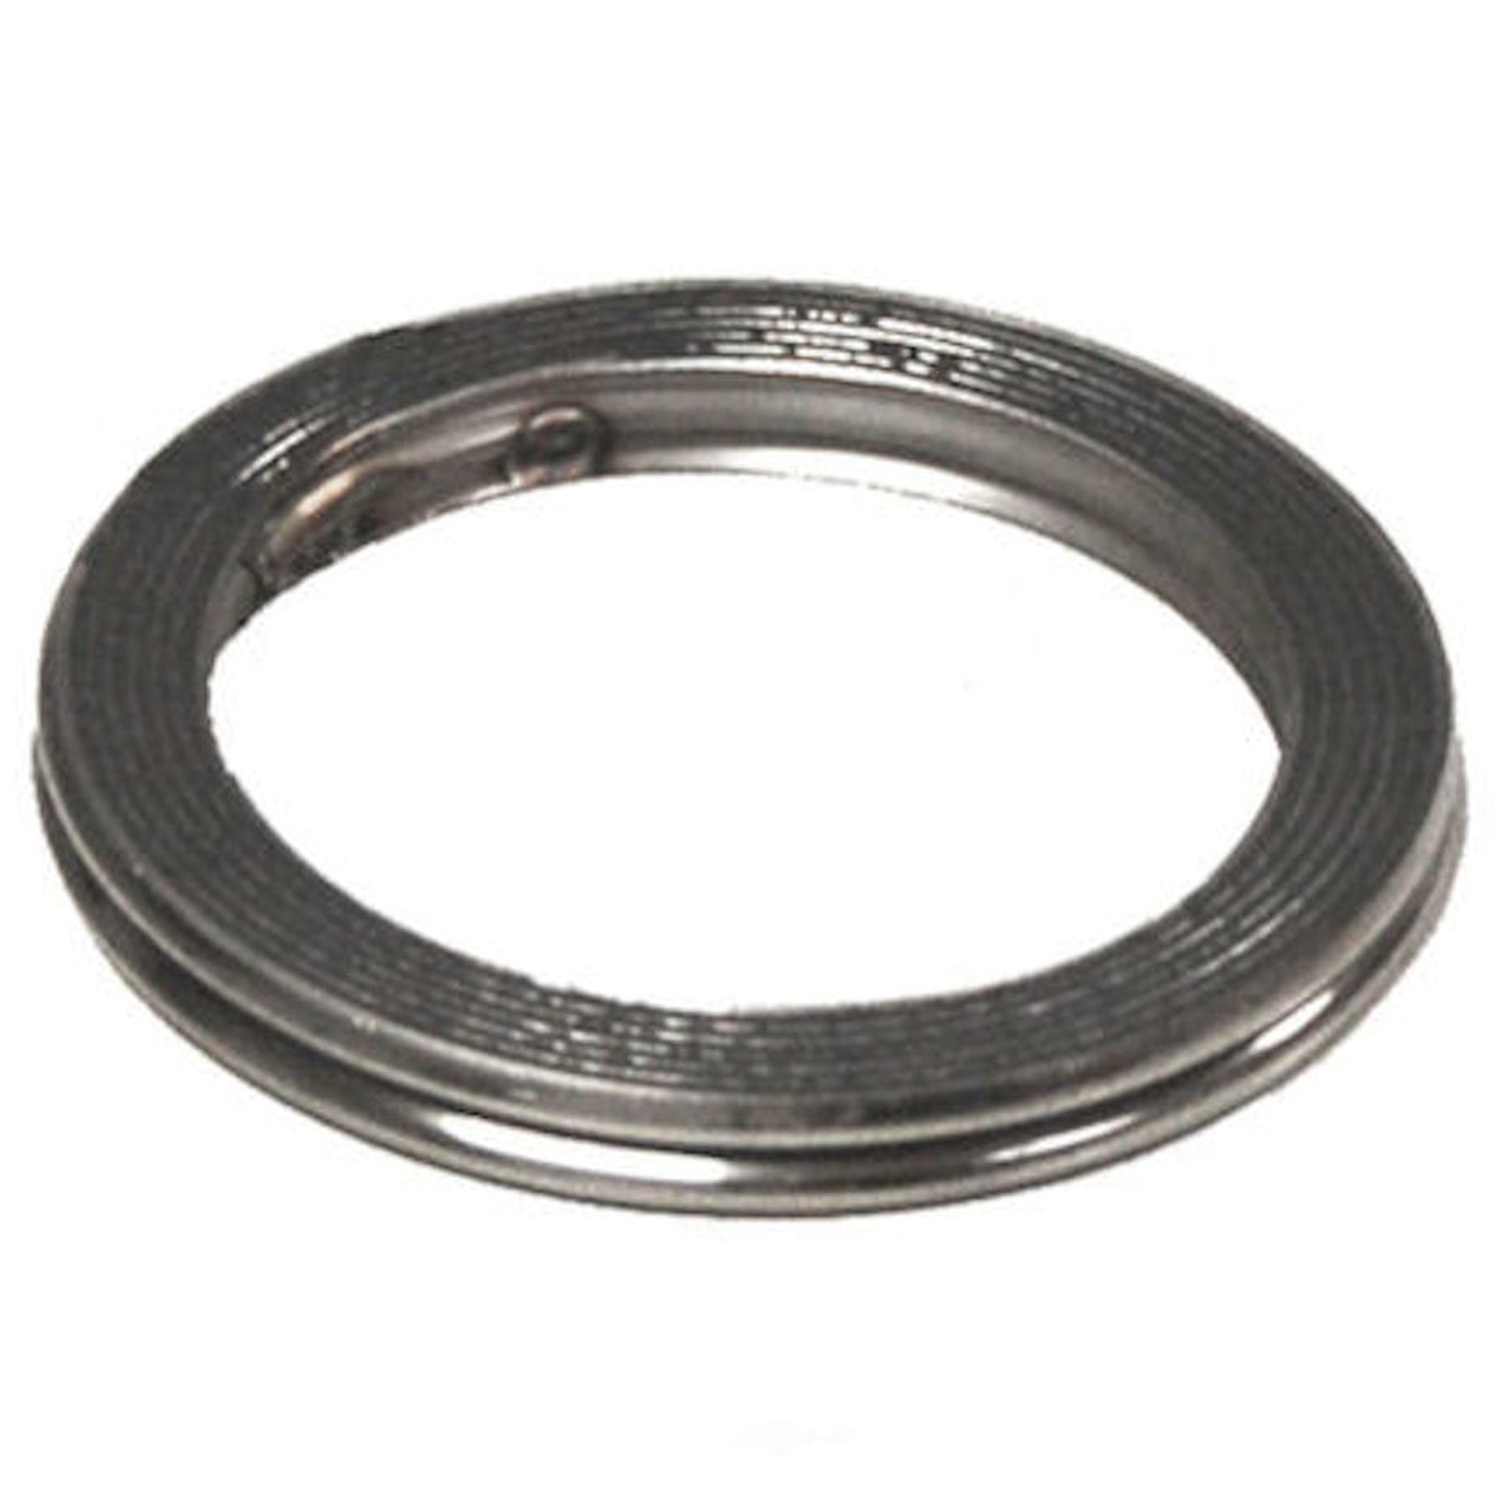 BOSAL 49 STATE CONVERTERS - Gasket (Front) - BSF 256-061